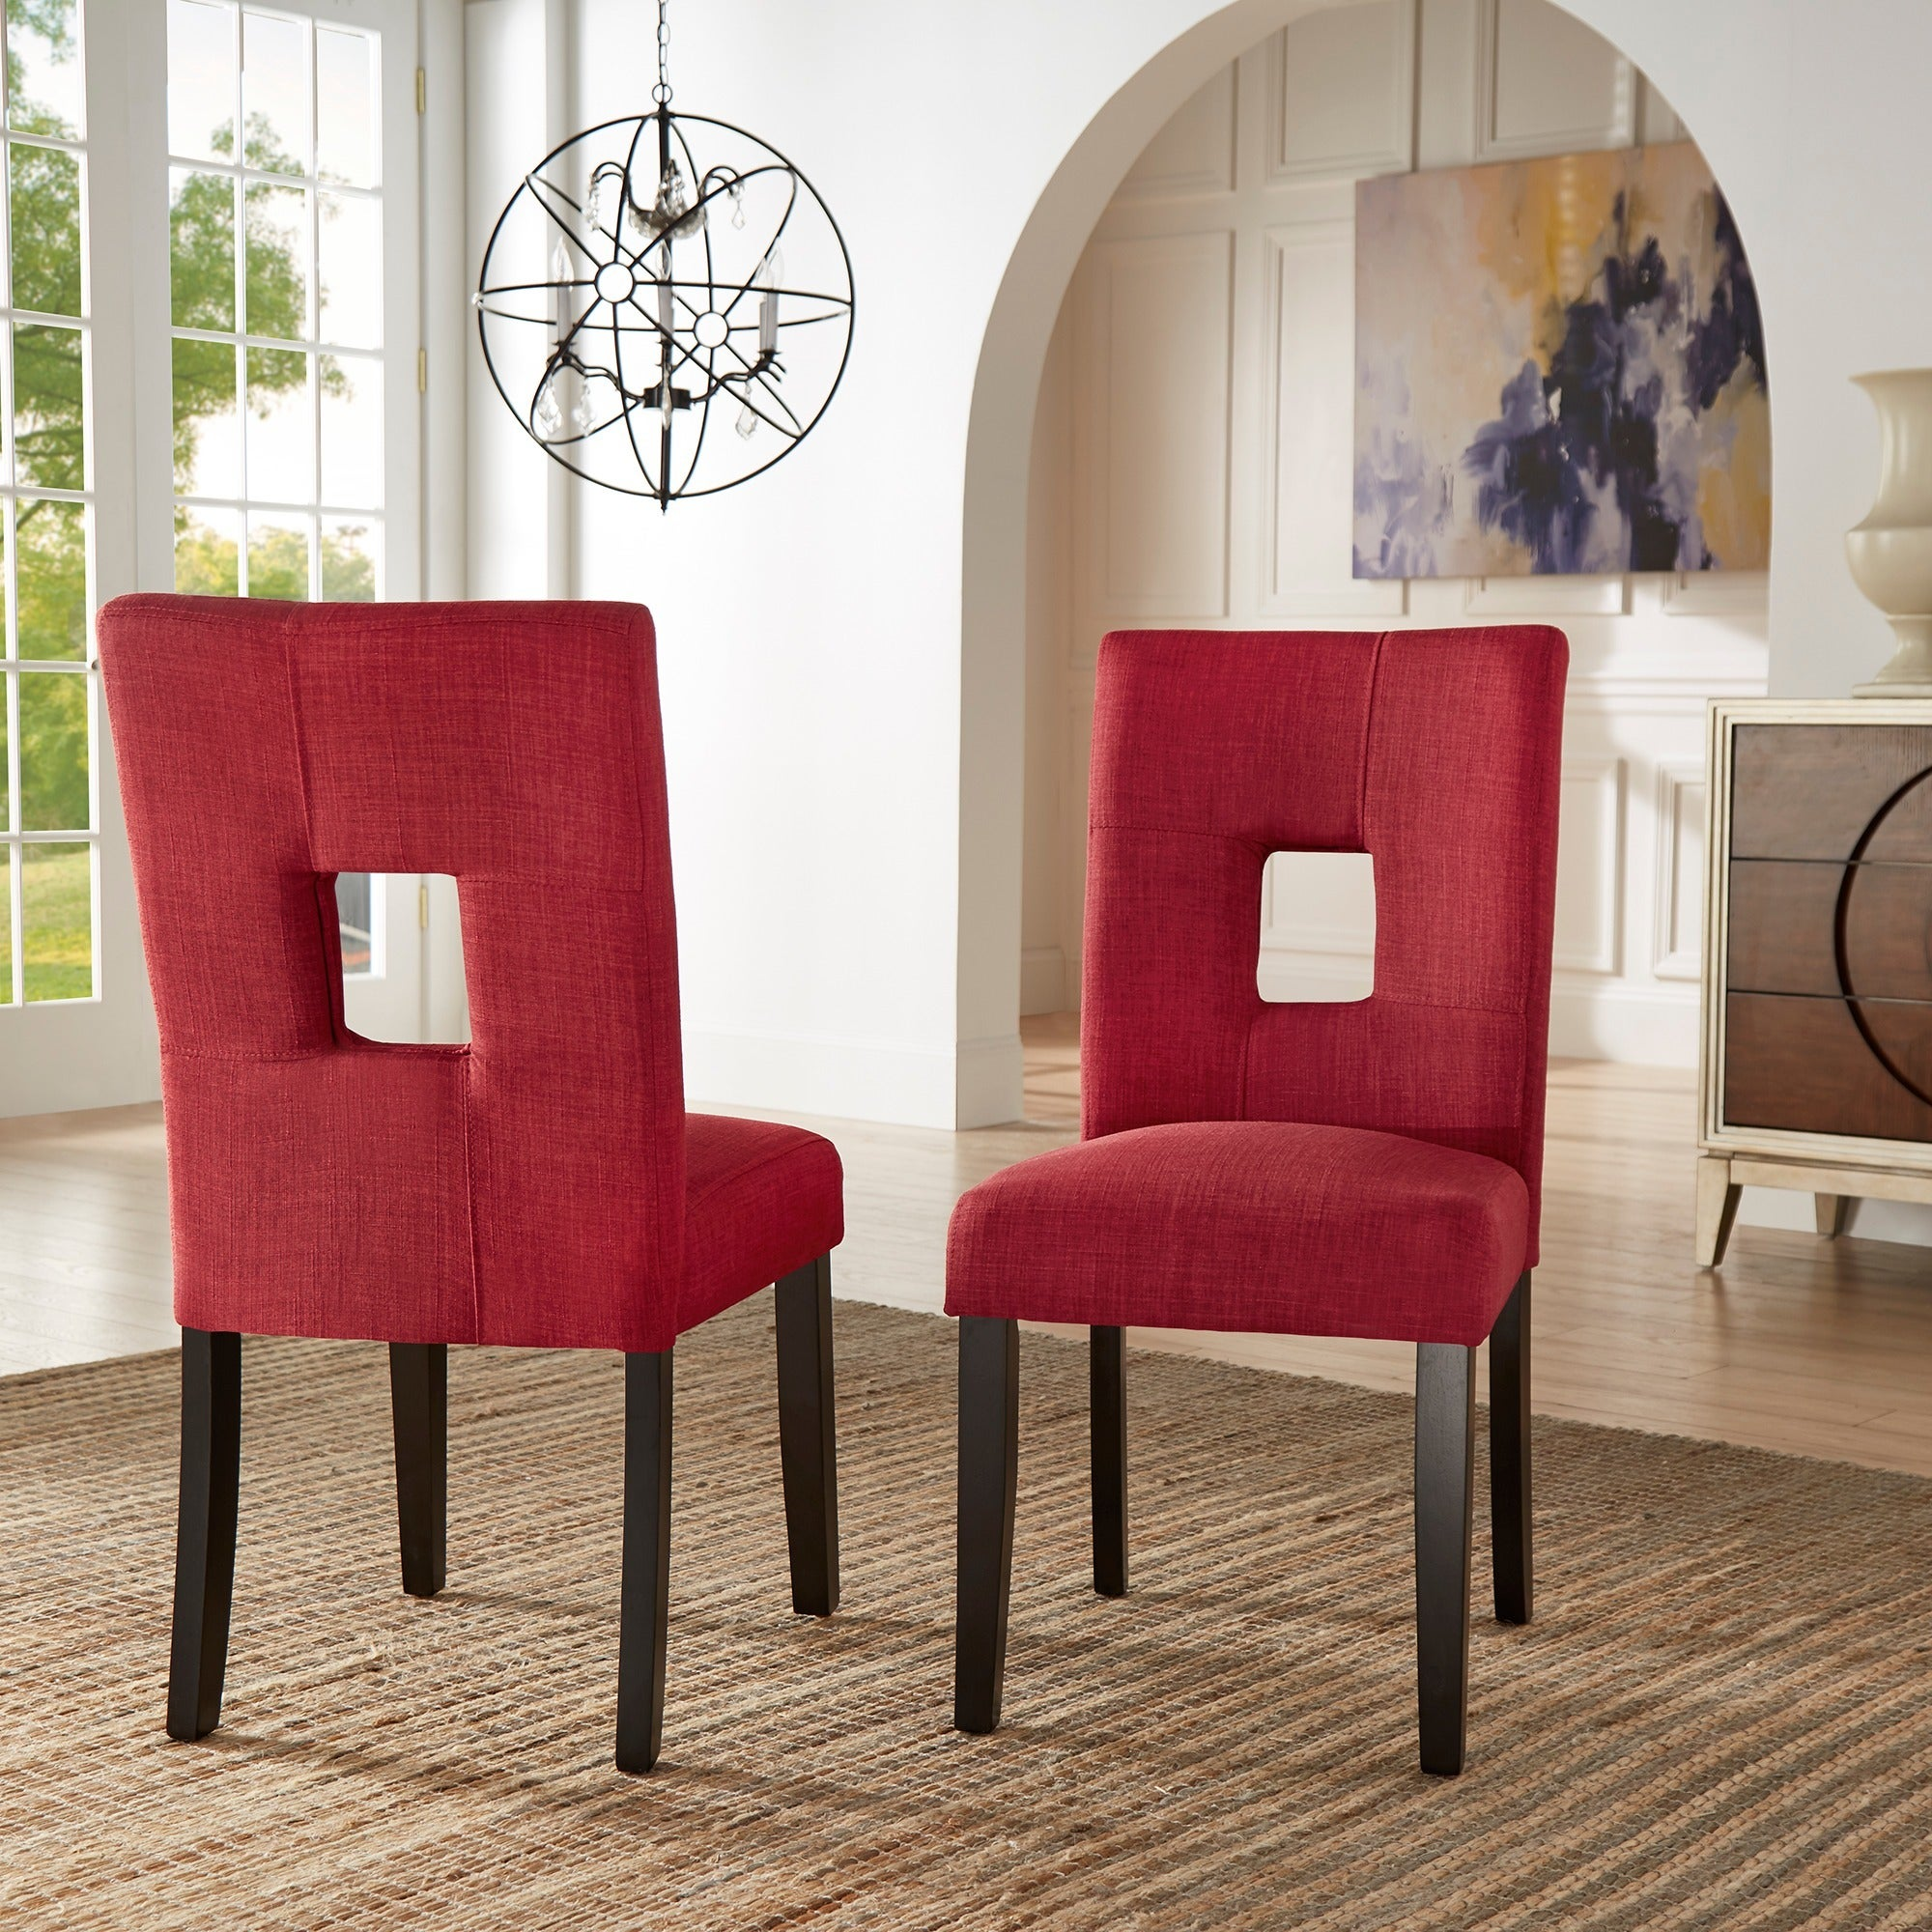 Mendoza Keyhole Back Dining Chairs Set Of 2 By Inspire Q Bold Free Shipping Today 5178479